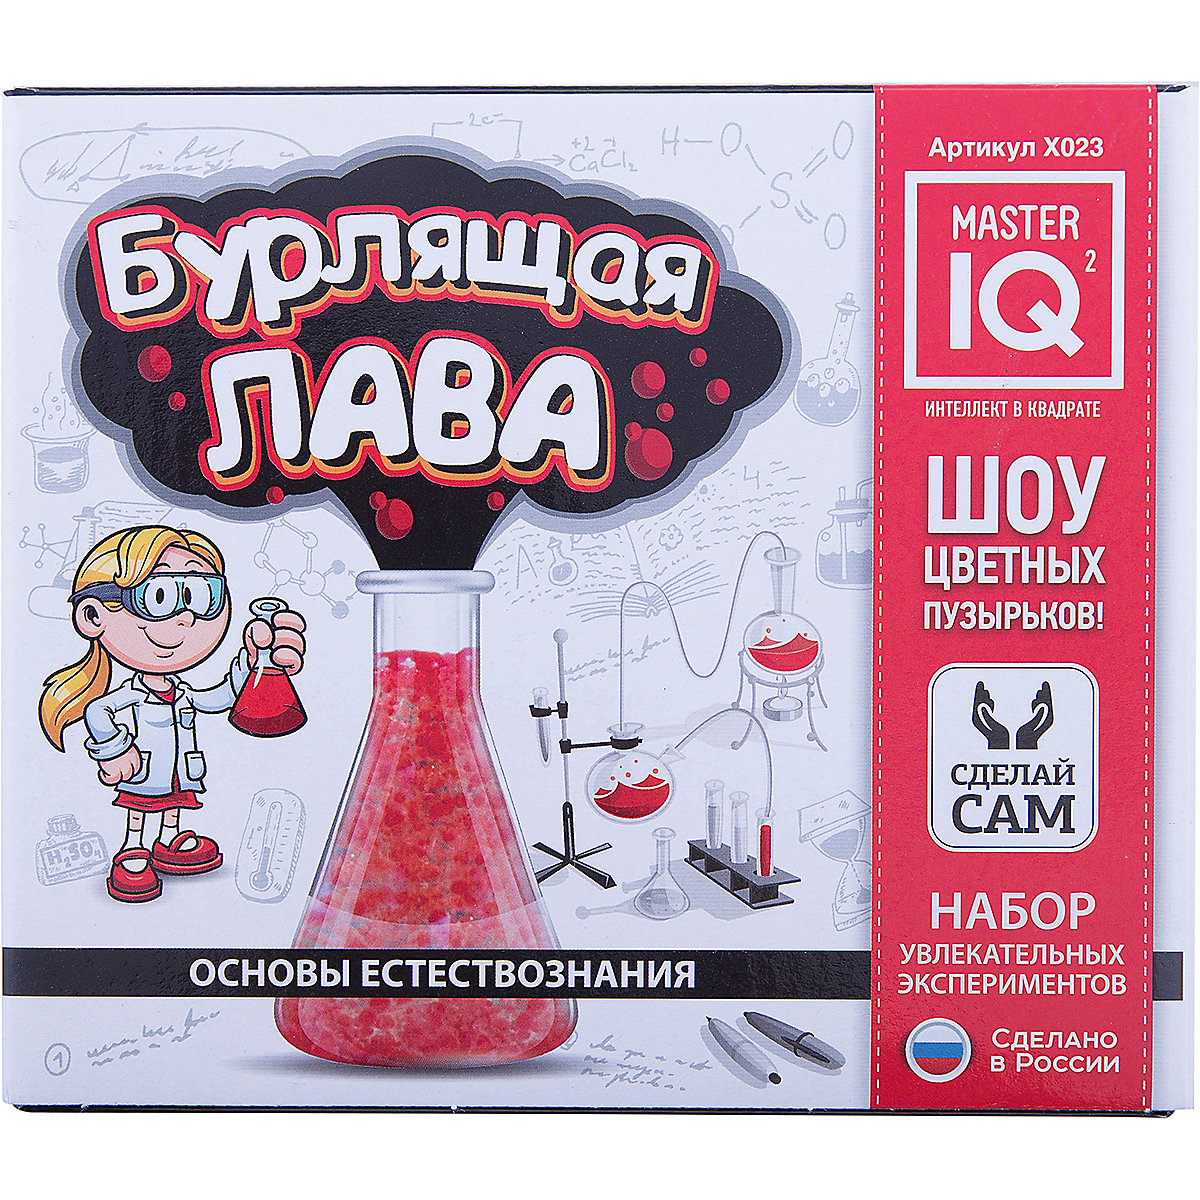 MASTER IQ2 Science 5083890 s experiments for children  technology toy play game girl boy MTpromo цены